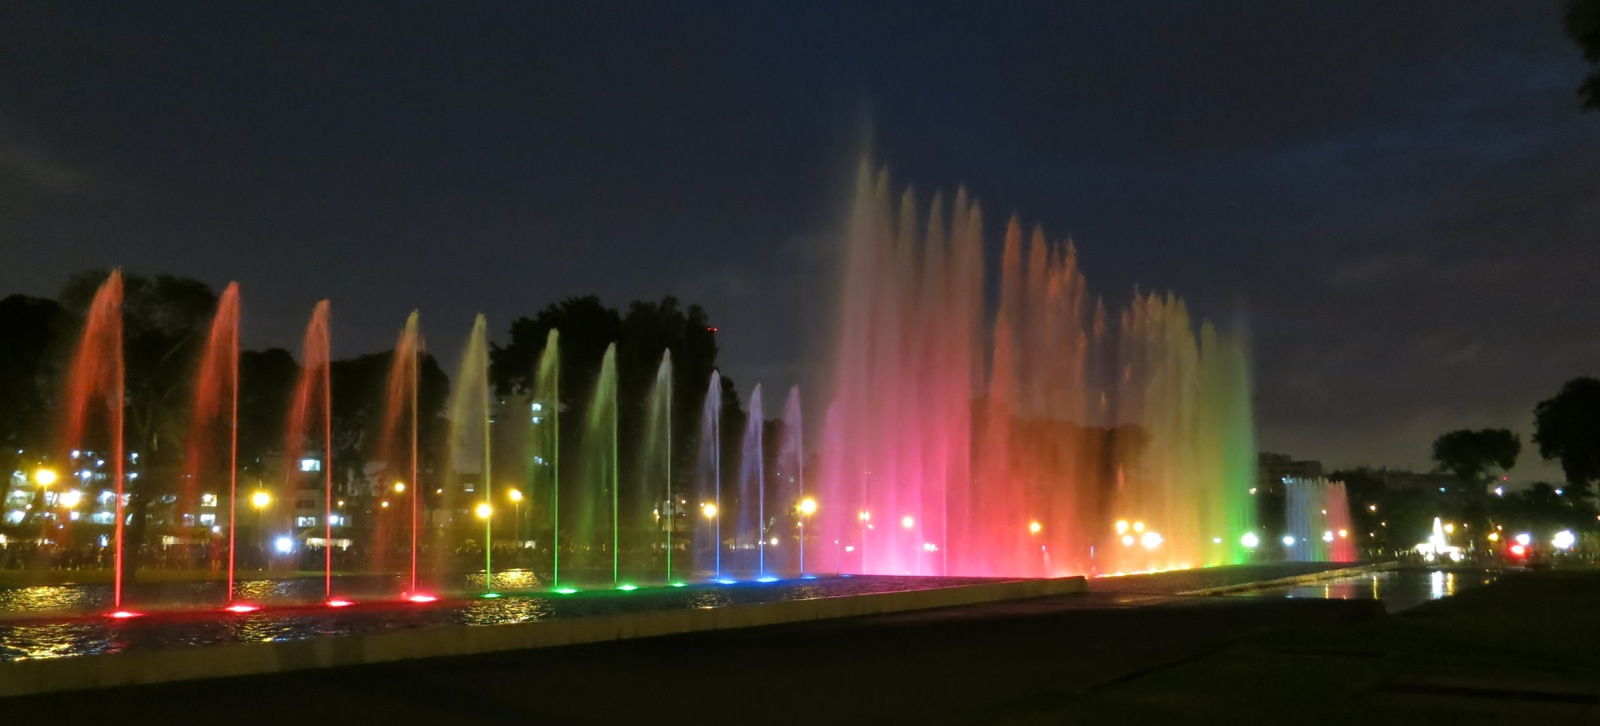 Water fountains lima - Magic Water Circuit Parque De La Reserva Lima Peru